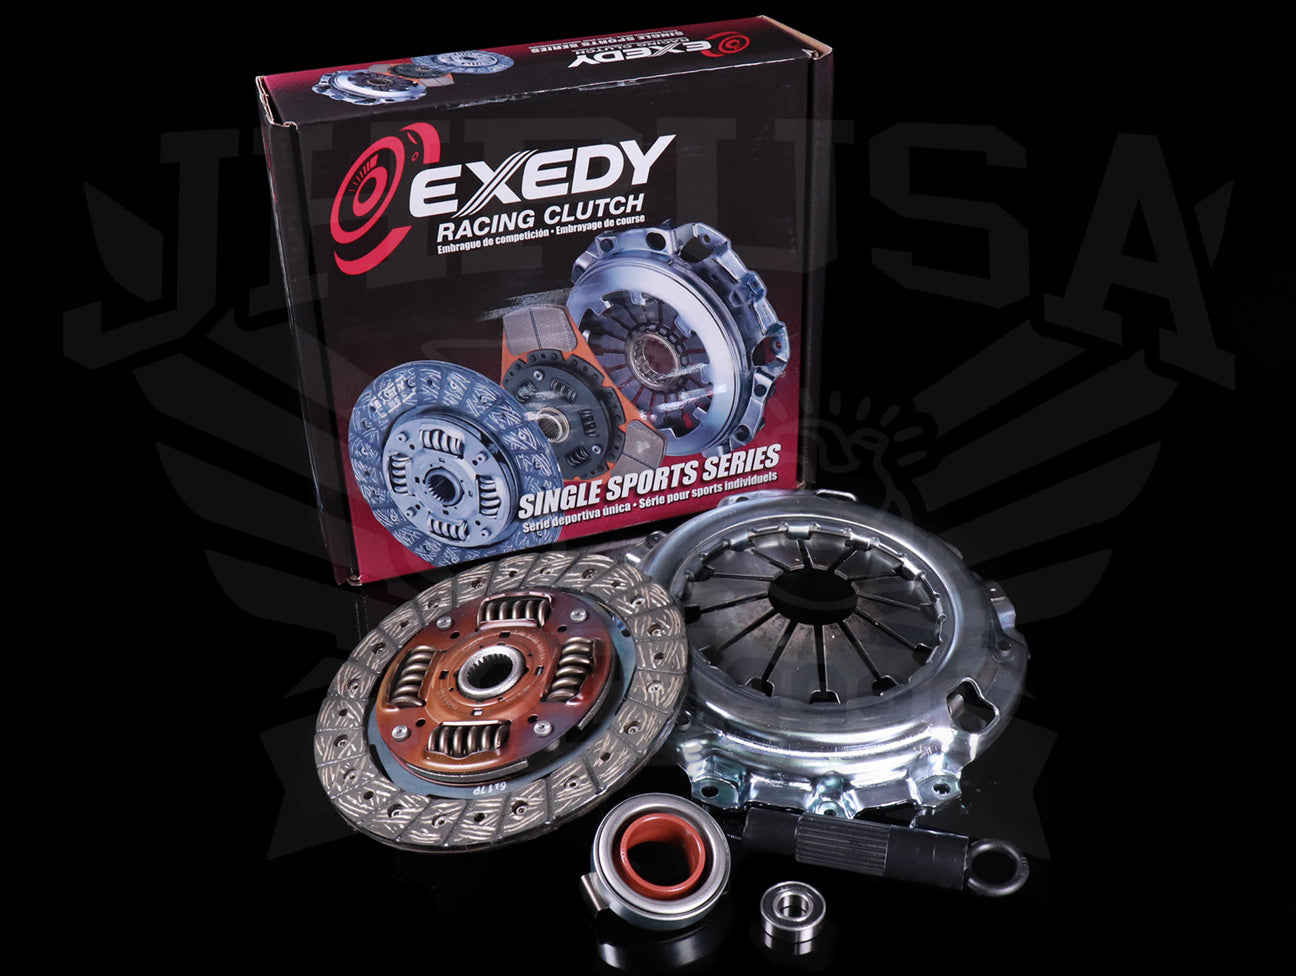 Exedy Stage 1 Organic Clutch Kit - B-series (Hydro trans)